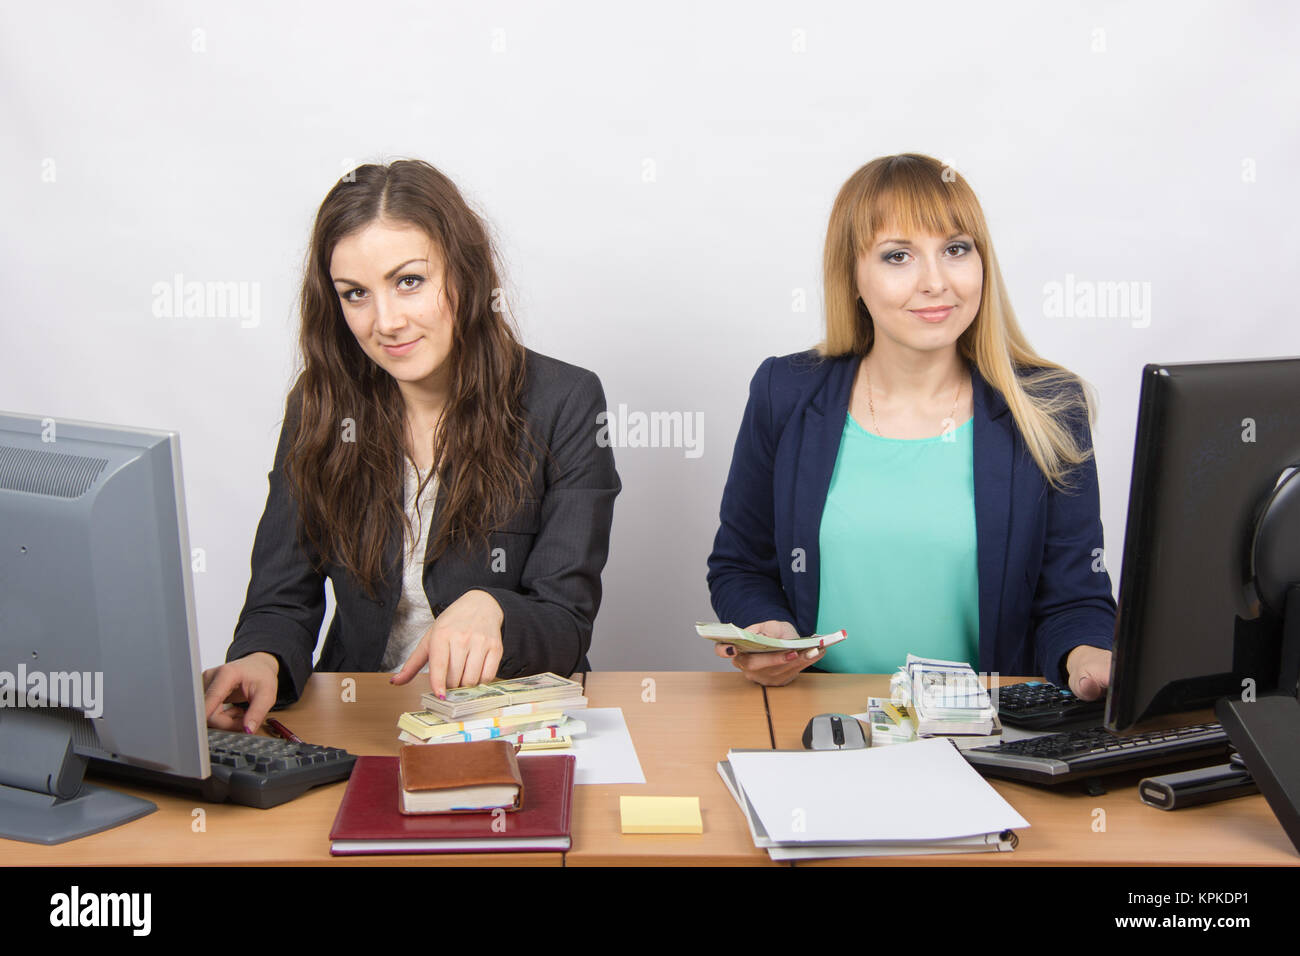 For office desk employee working with money - Stock Image